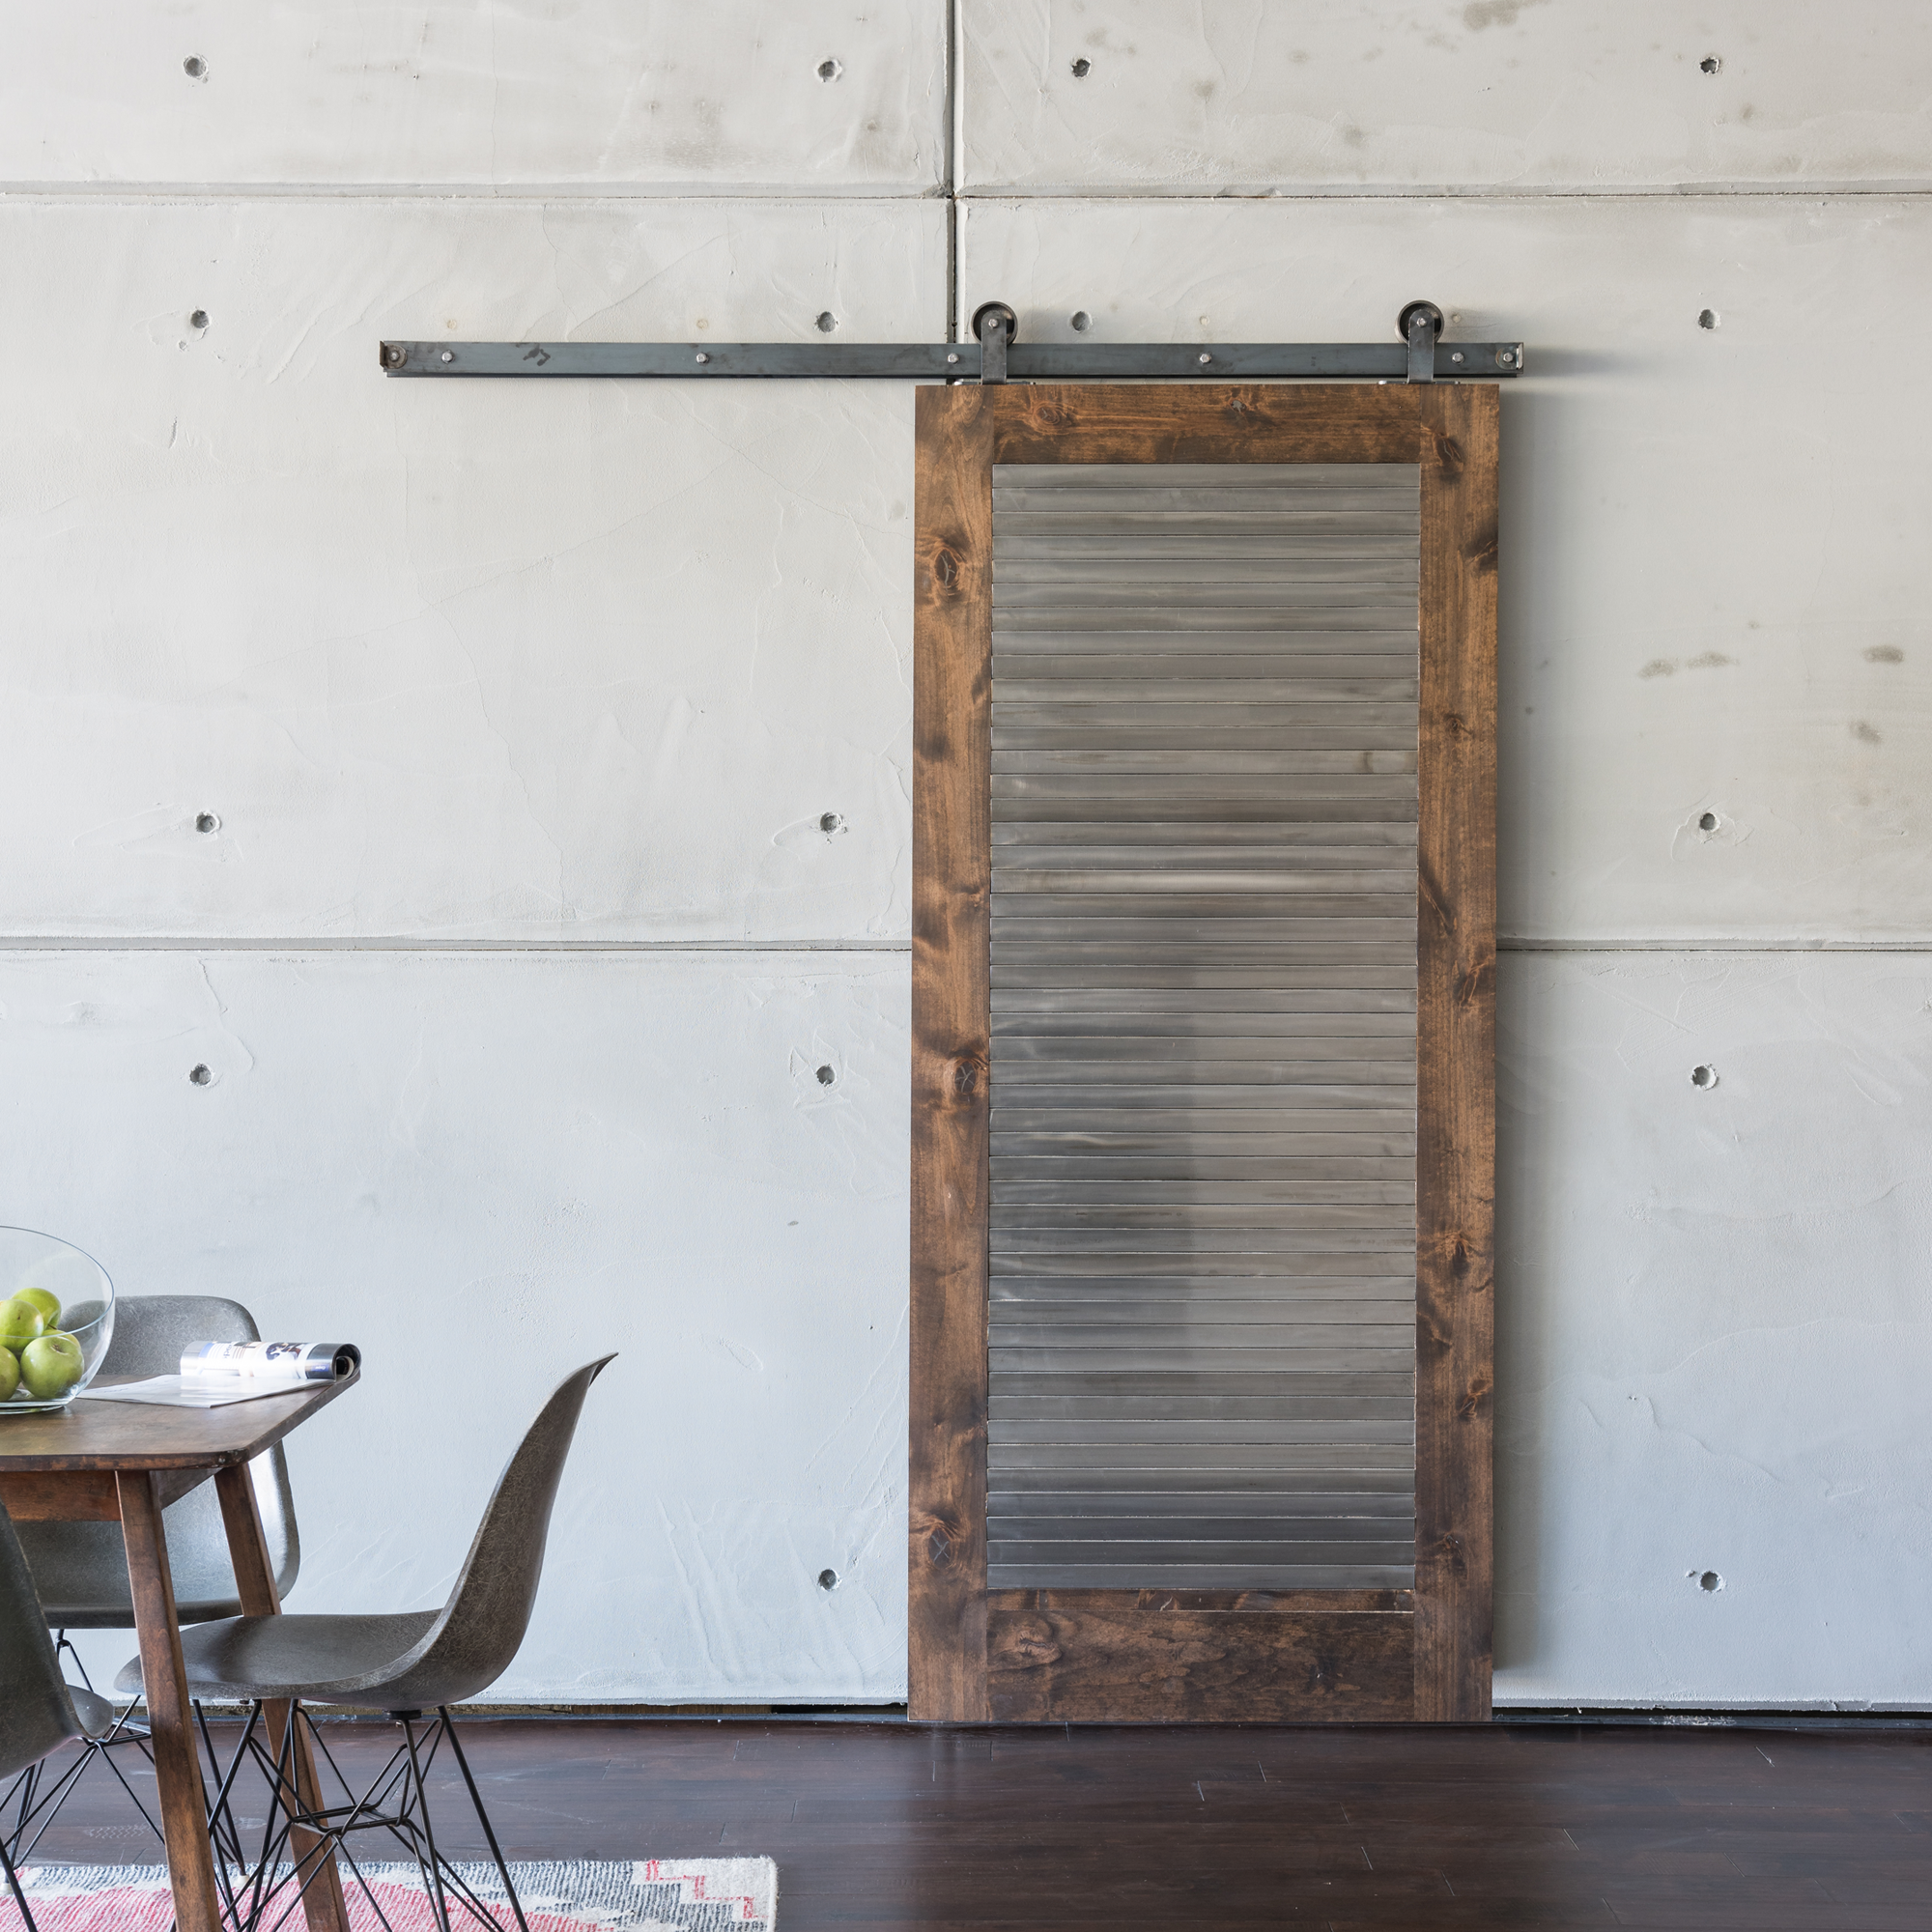 The industrial barn door embodies a modern industrial look adding the industrial barn door embodies a modern industrial look adding style and substance to a barn eventelaan Choice Image